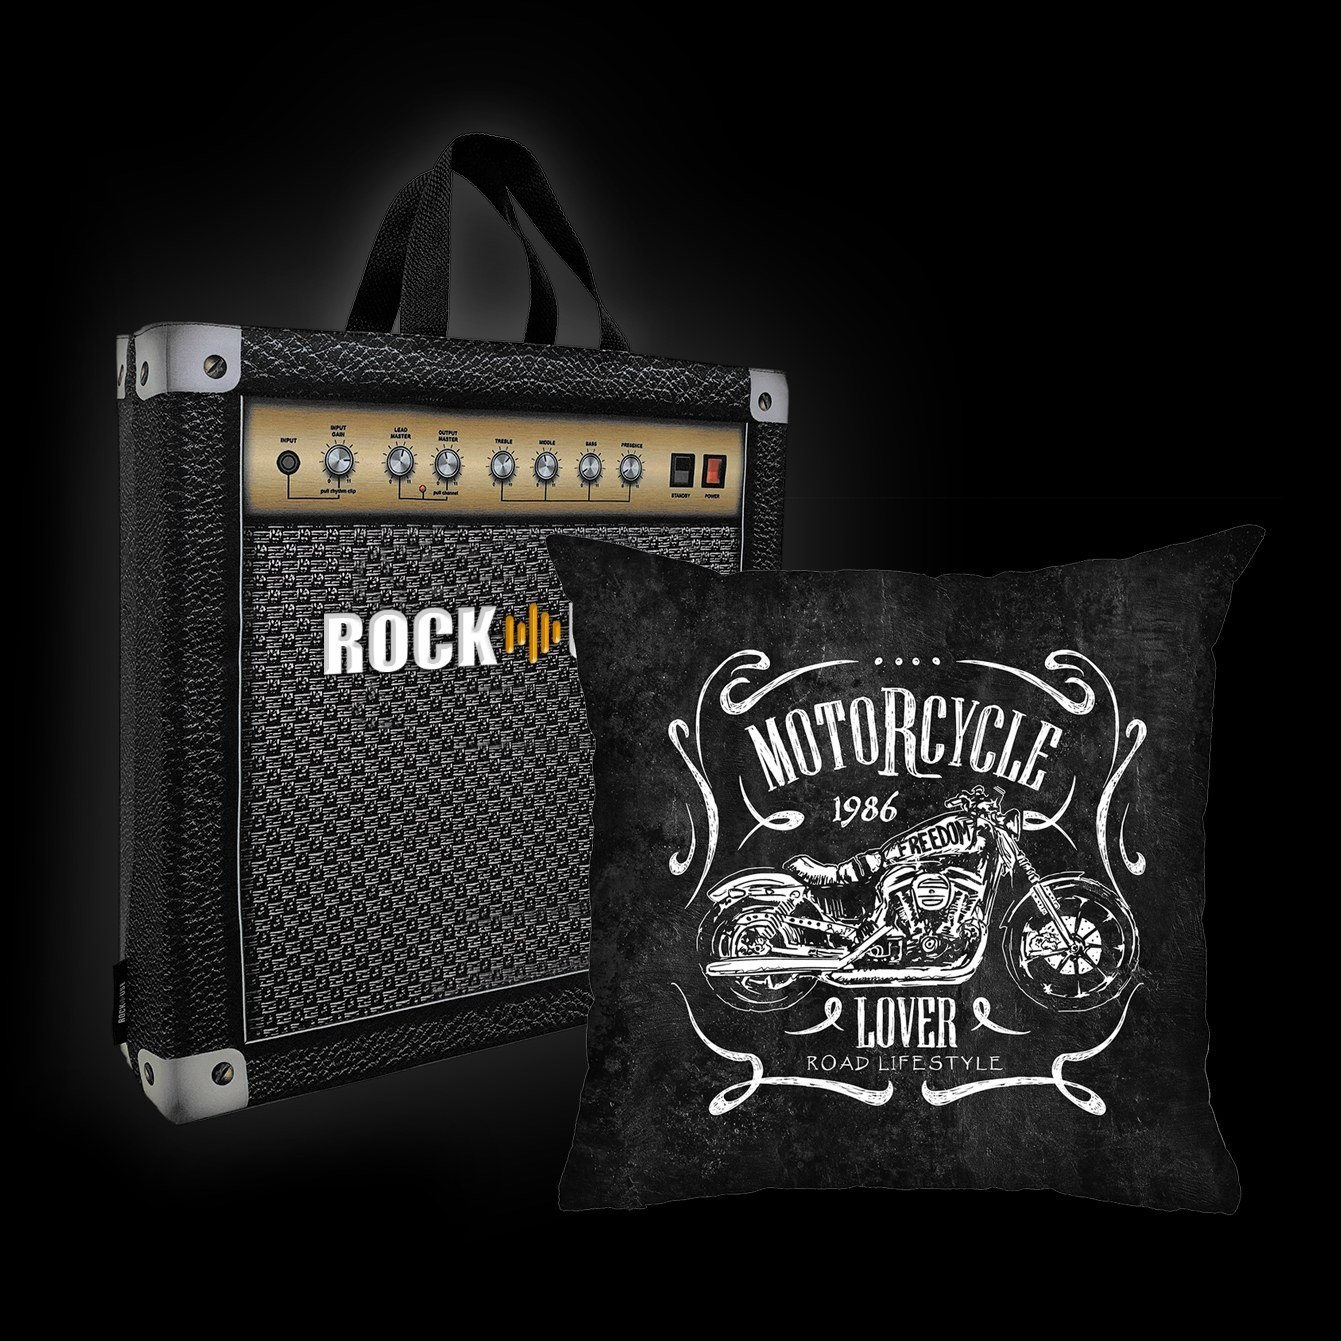 Kit Almofada & Sacola Rock Use - Road Lifestyle